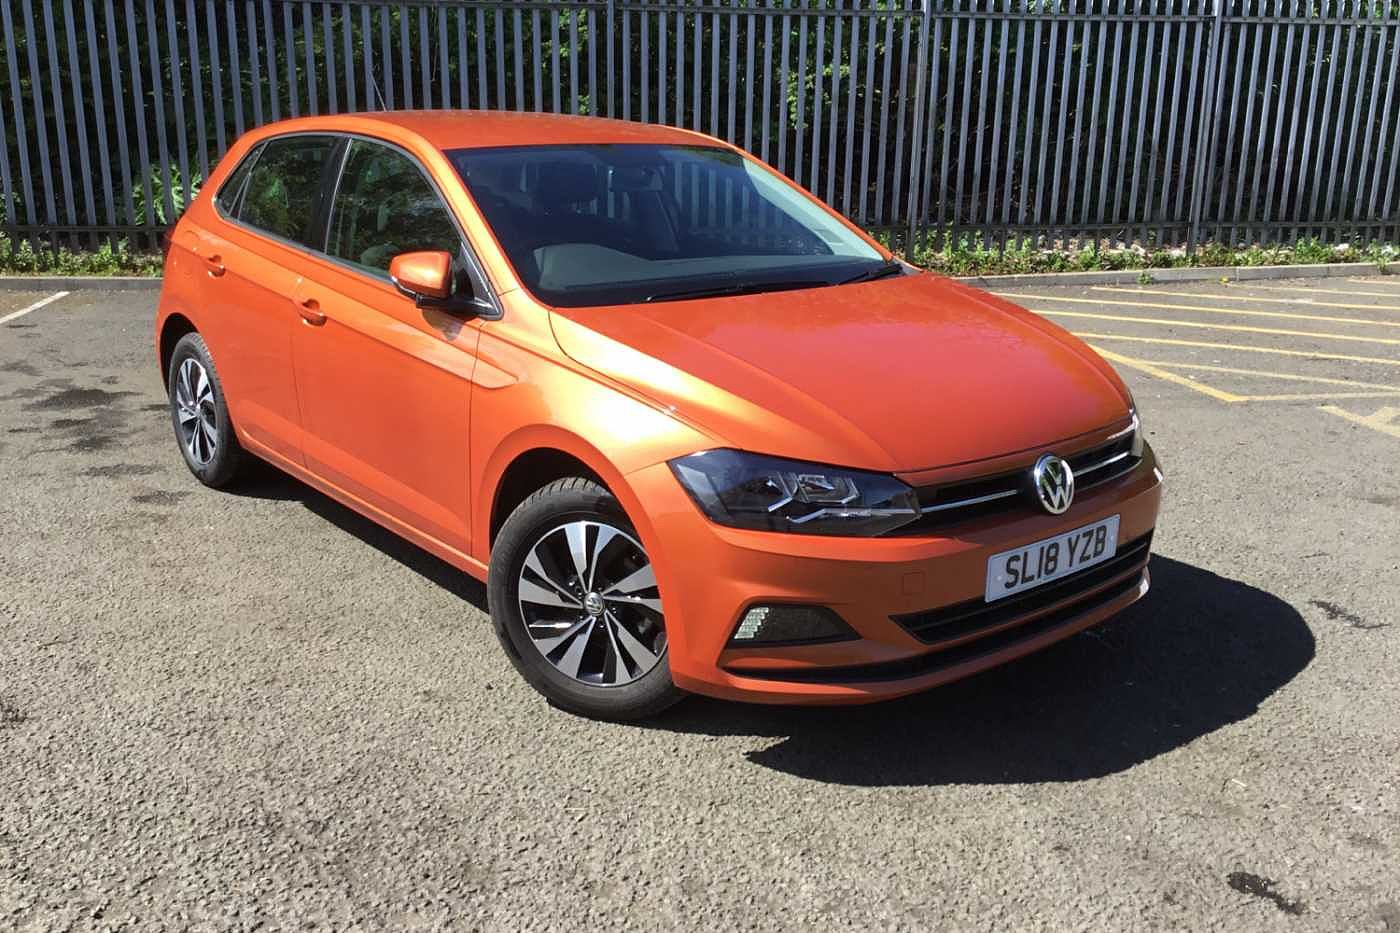 2018 Polo MK6 Hatchback 5Dr 1.0 TSI 95PS SE for Sale in Edinburgh